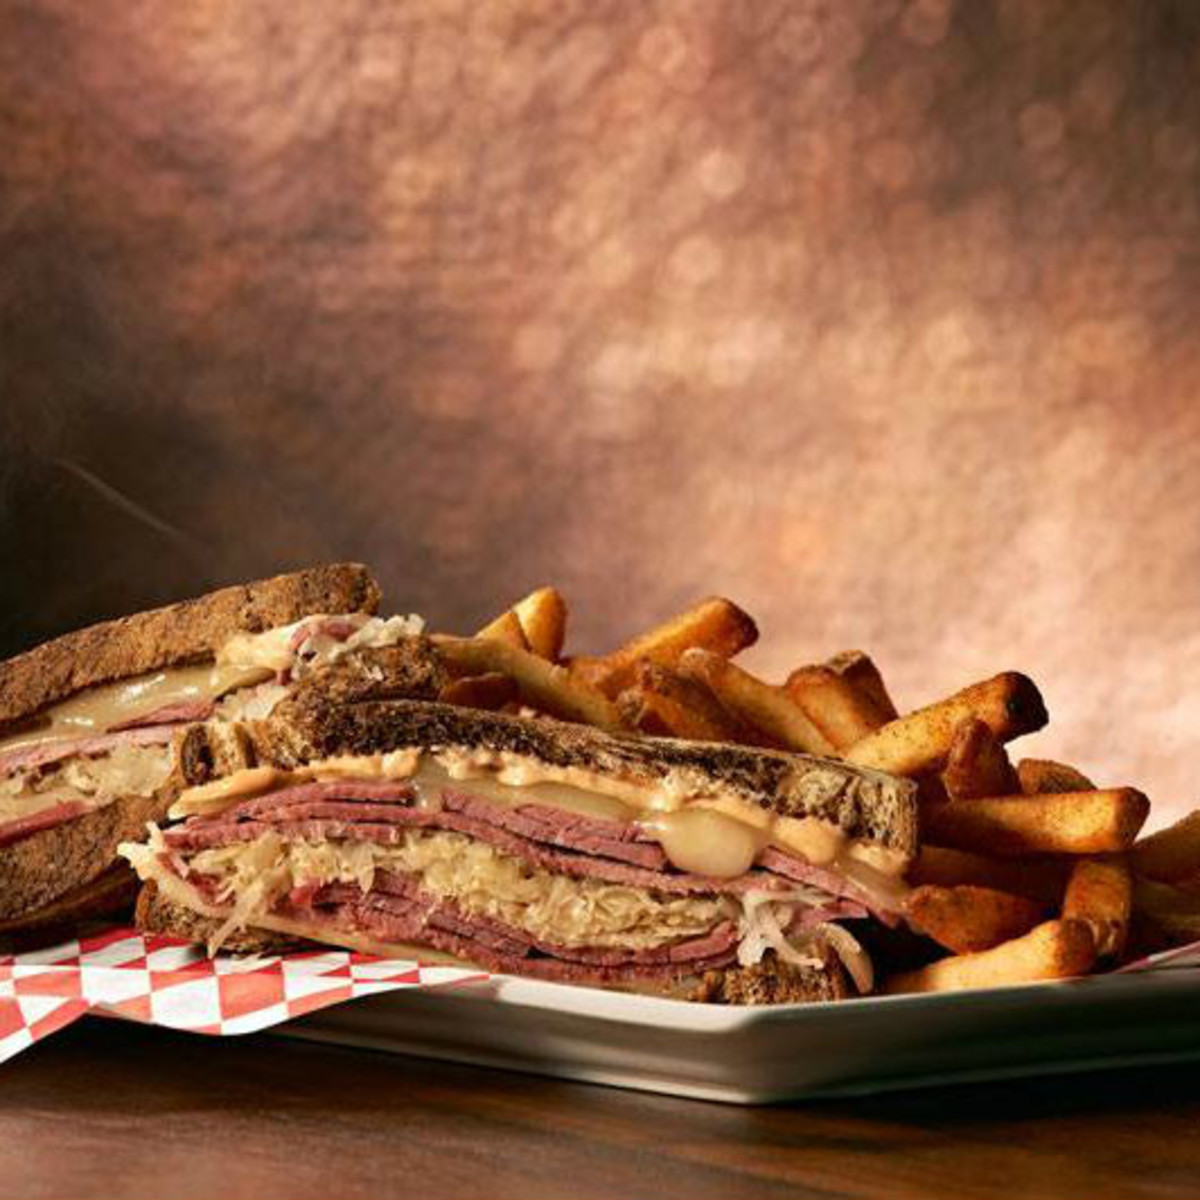 Reuben sandwich at Sherlock's Pub